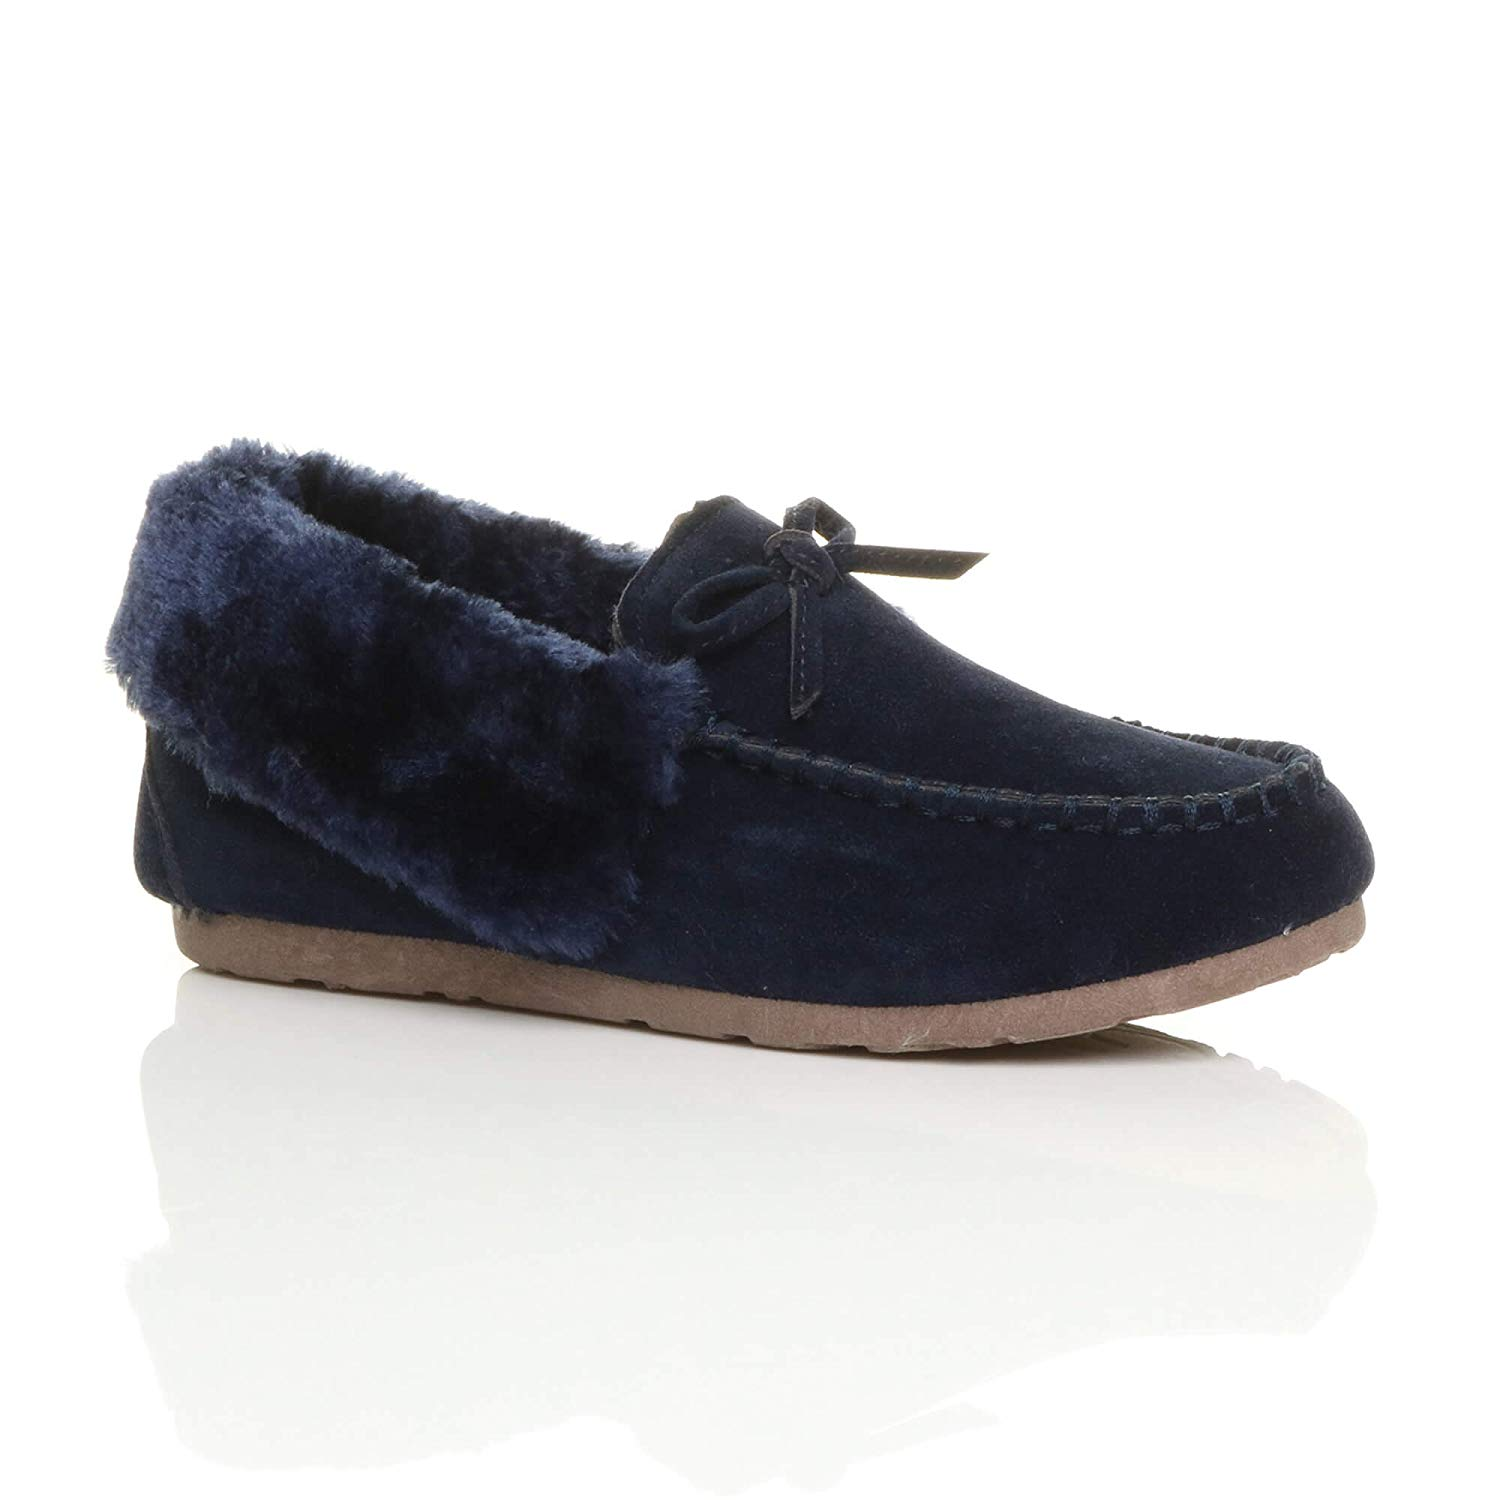 d282fe6bed9 Get Quotations · Ajvani Women s Fur Collar Lined Moccasins Slippers Size